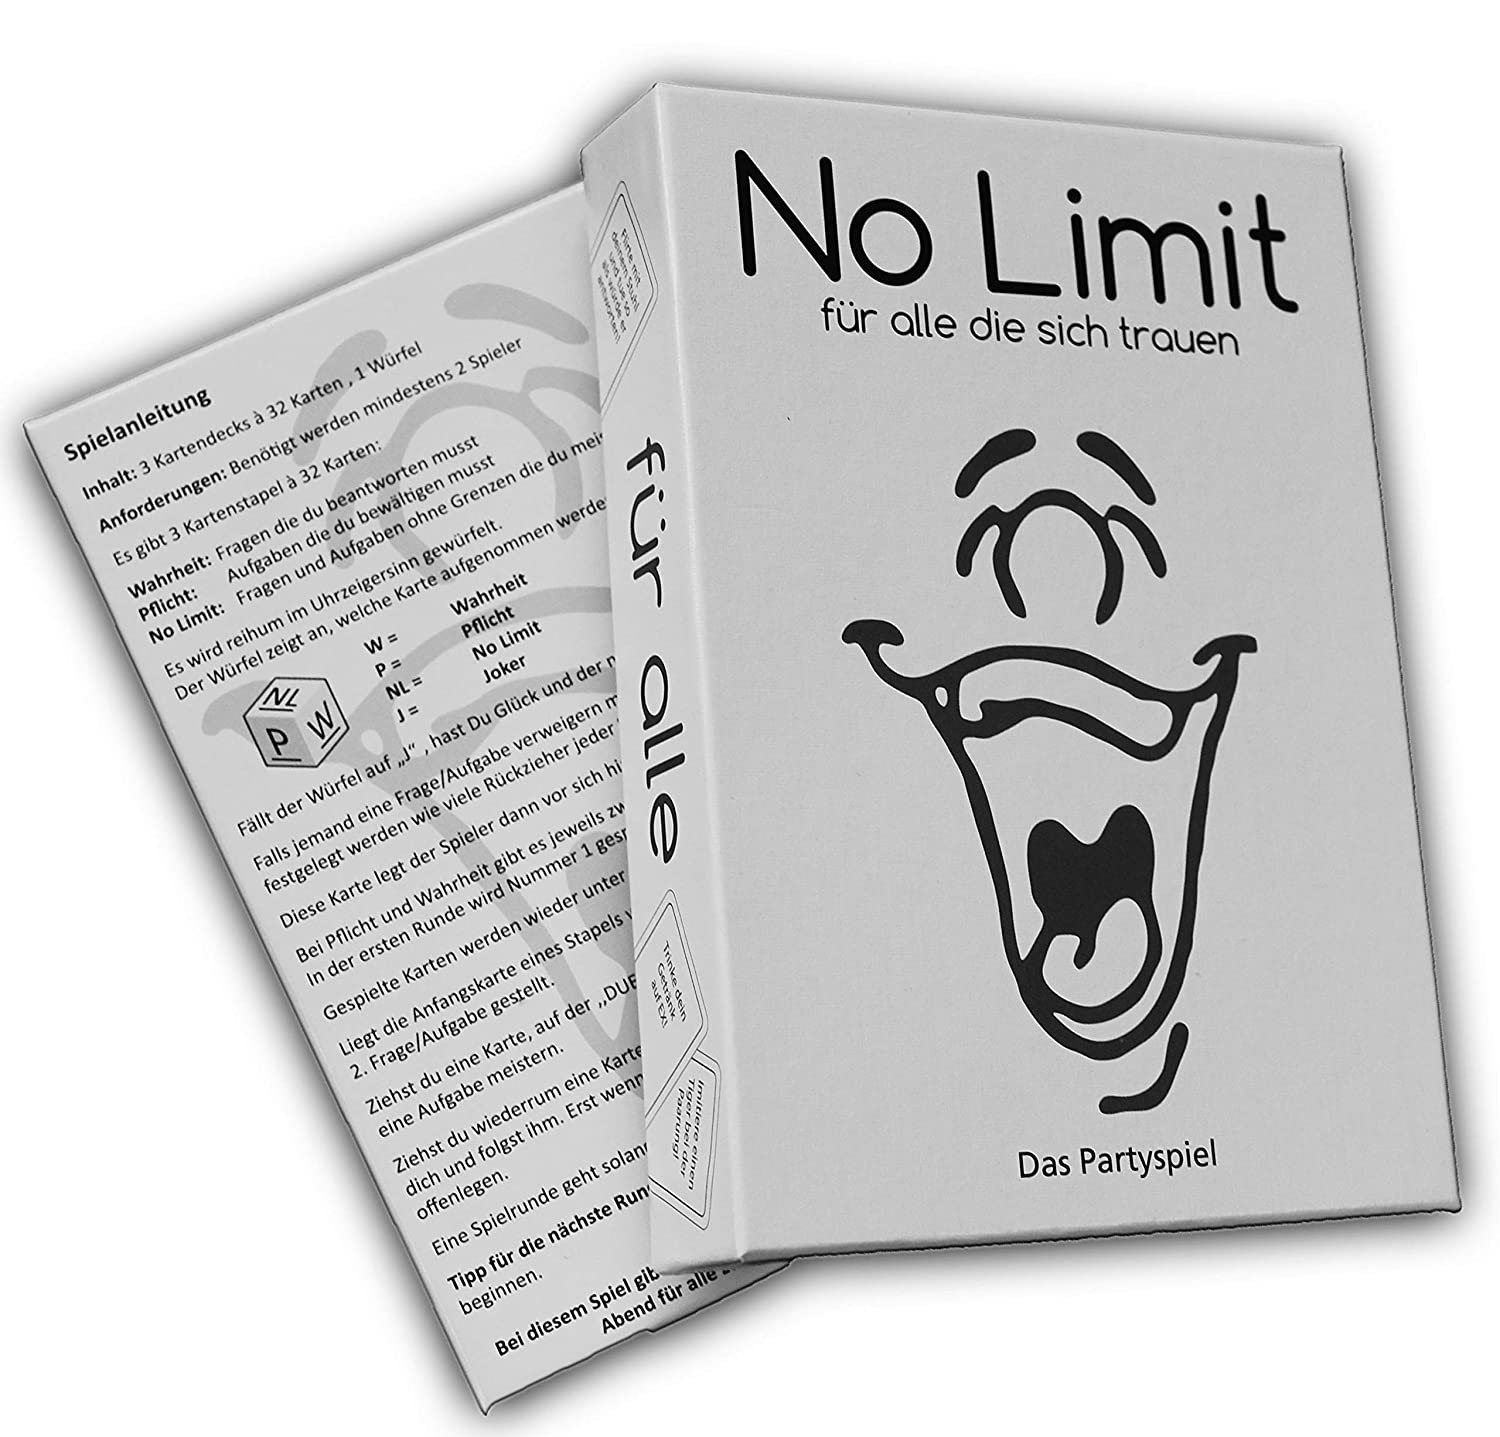 No Limit https://amzn.to/2RKvpX4